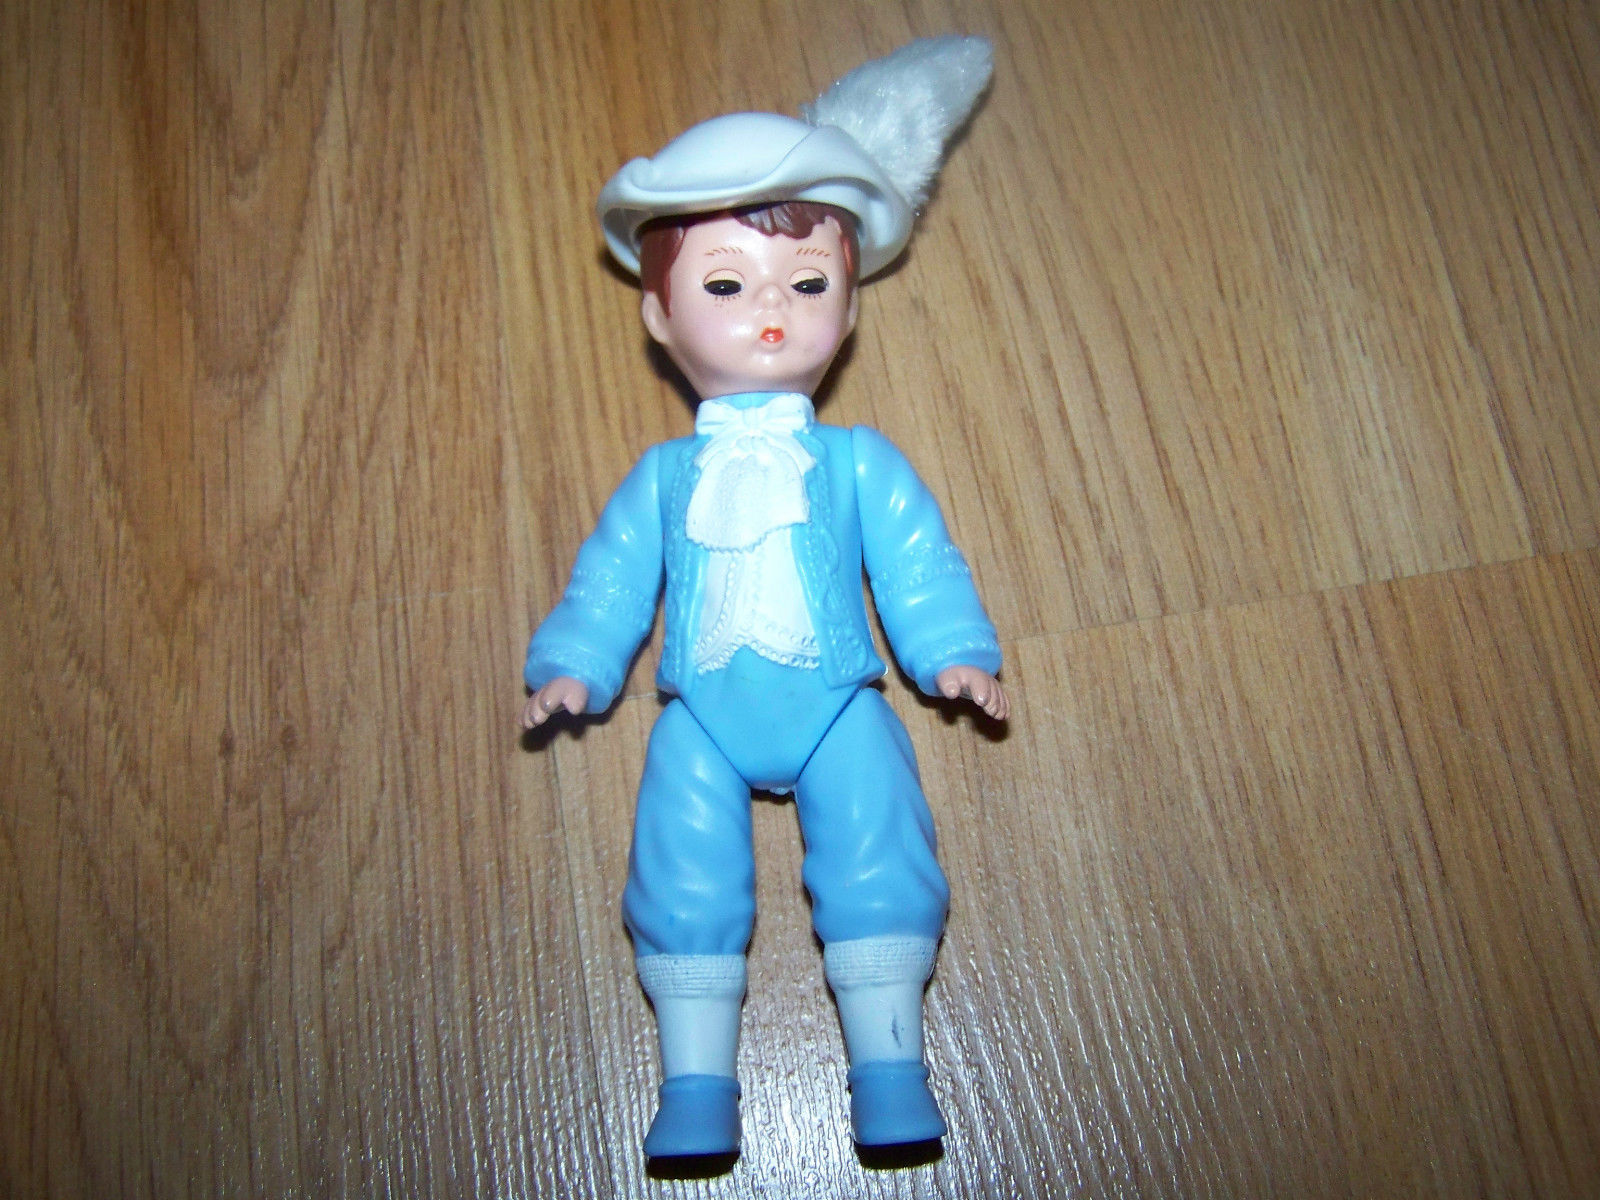 Primary image for Madame Alexander Prince Charming Boy Doll McDonalds PVC Figure Toy #4 2010